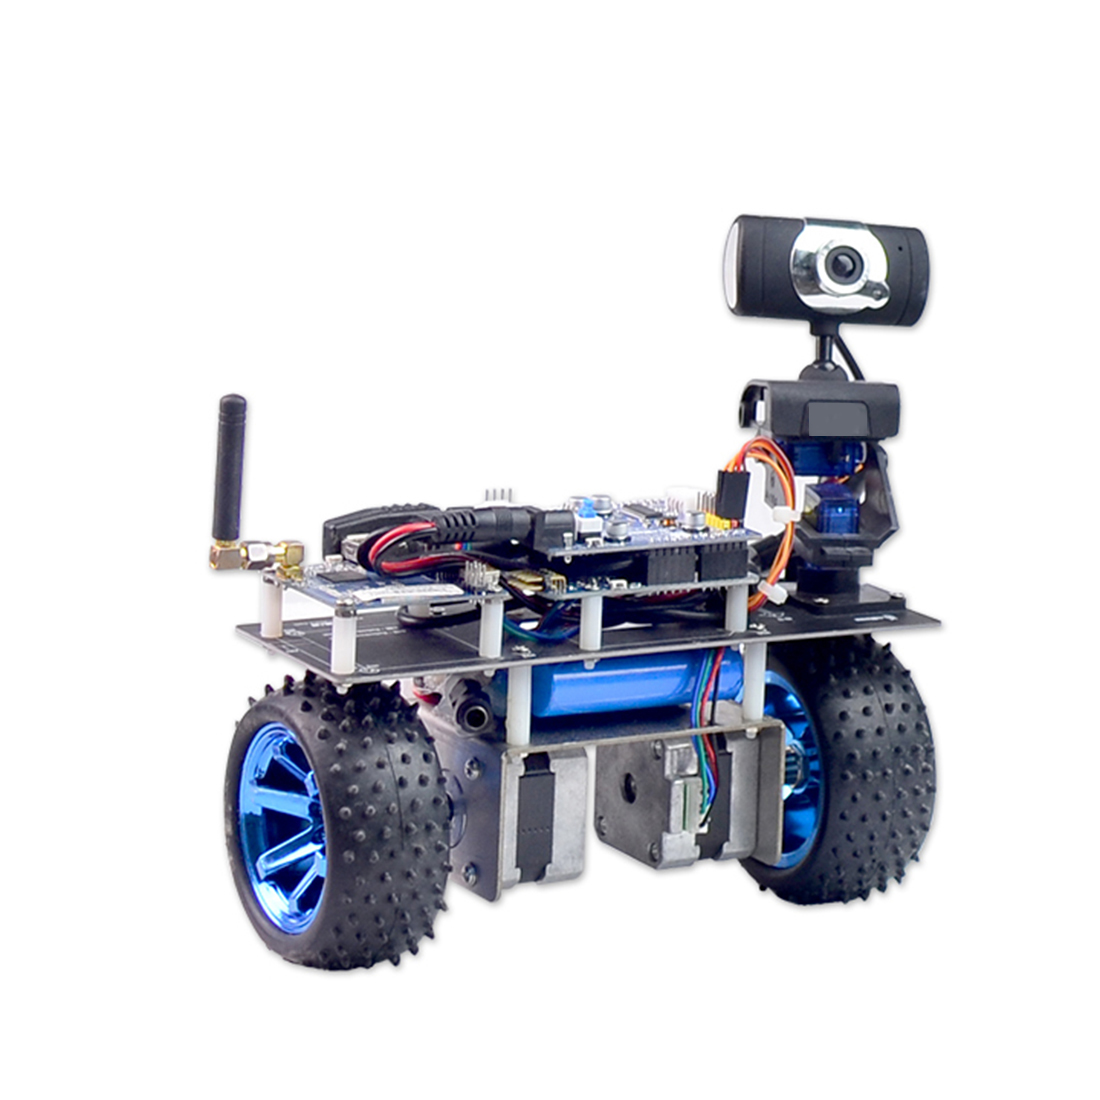 Programmable Intelligent Balance Car WiFi Video Robot Car Support IOS/Android APP PC Remote Control For STM32 Children Kids Toys